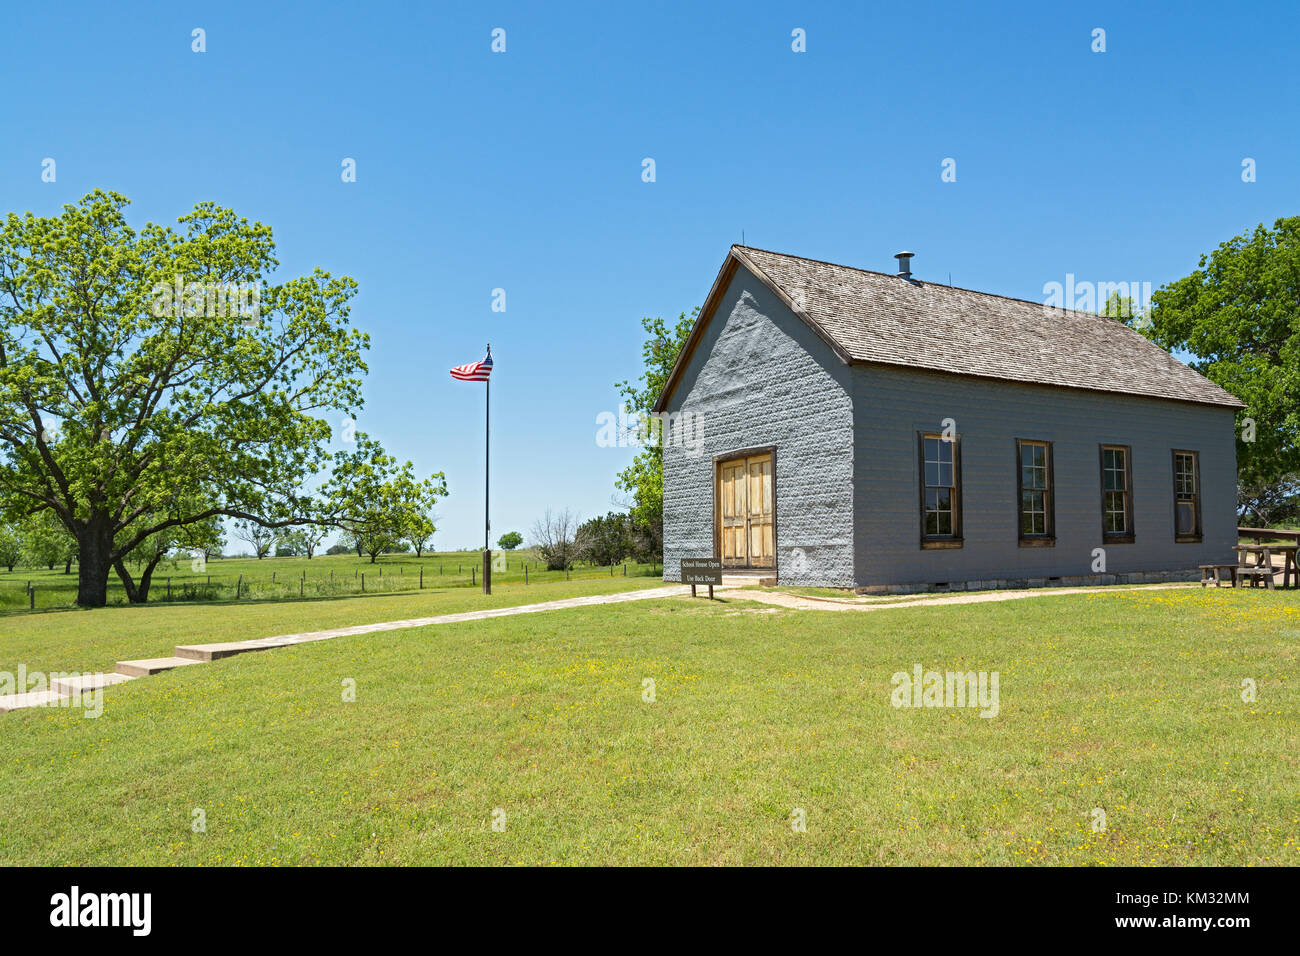 Texas stonewall lyndon b johnson national historical park stock texas stonewall lyndon b johnson national historical park junction school lbj attended as a four year old publicscrutiny Image collections